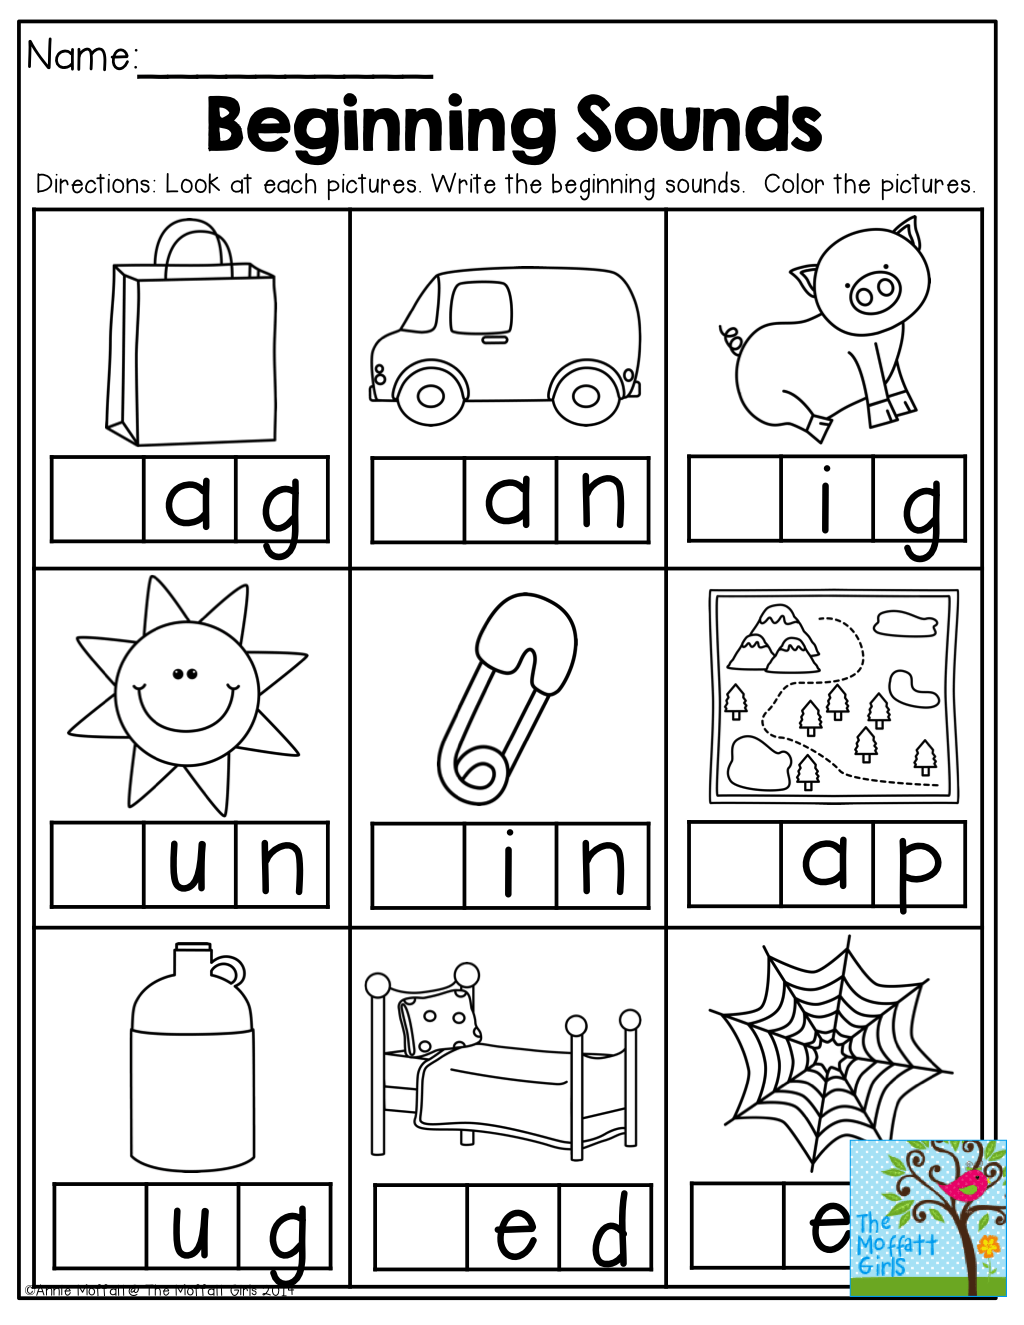 Beginning Sounds And Tons Of Other Back To School Printables